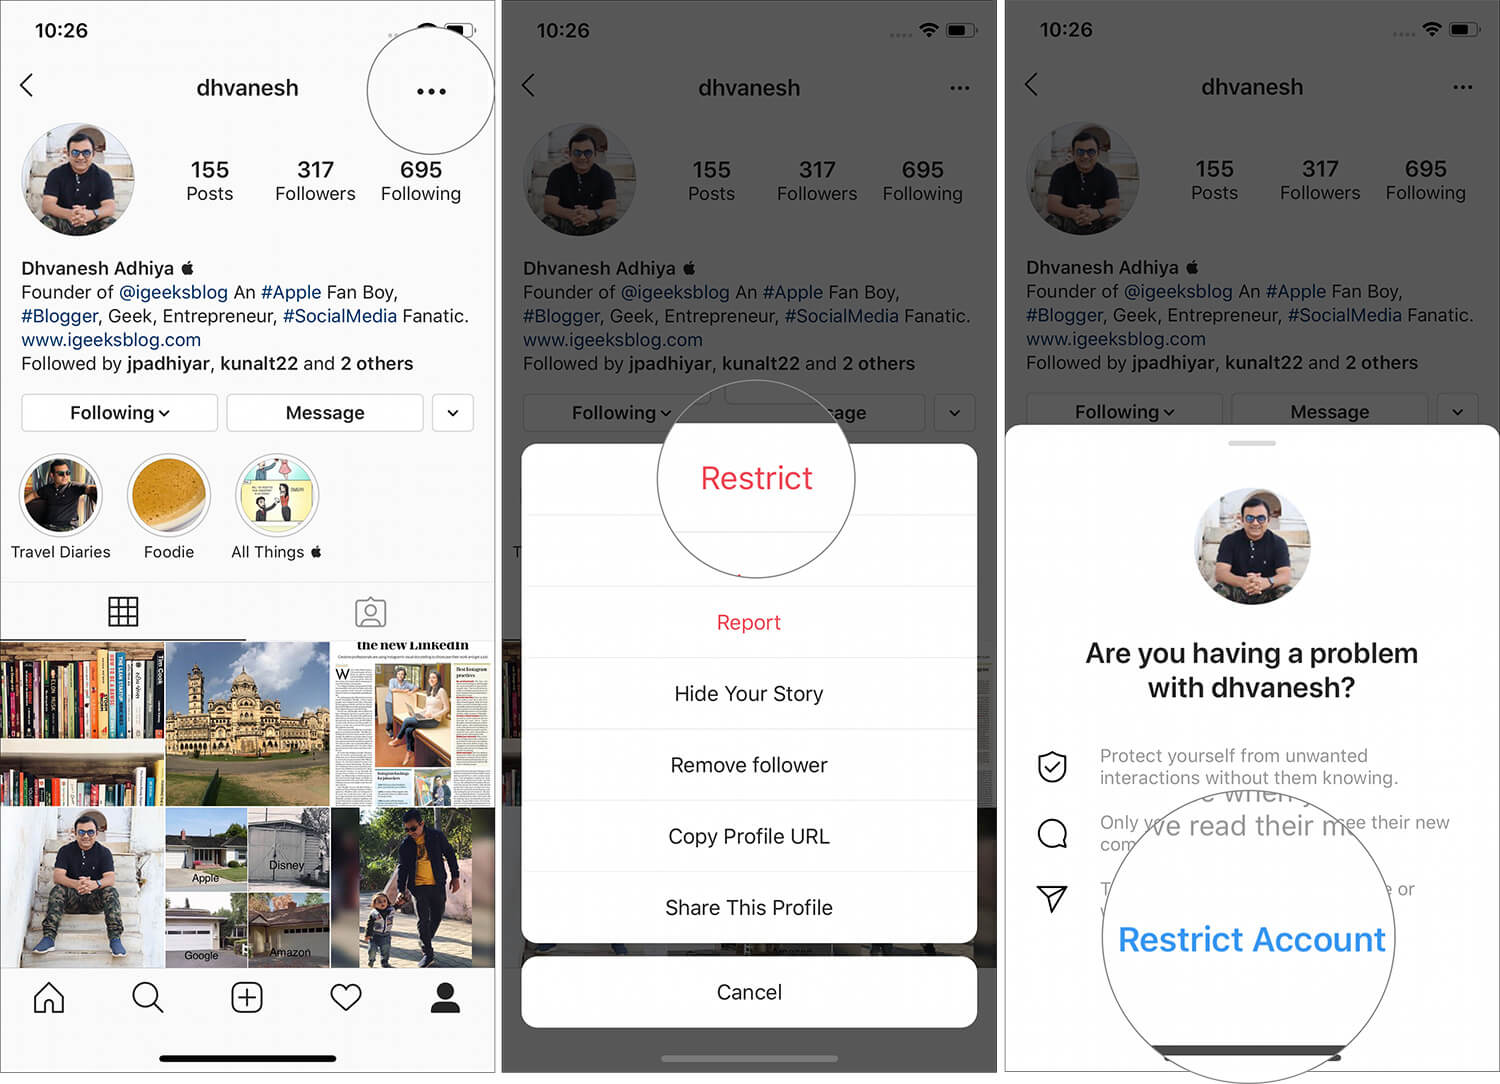 Restrict an Account in Instagram app on iPhone